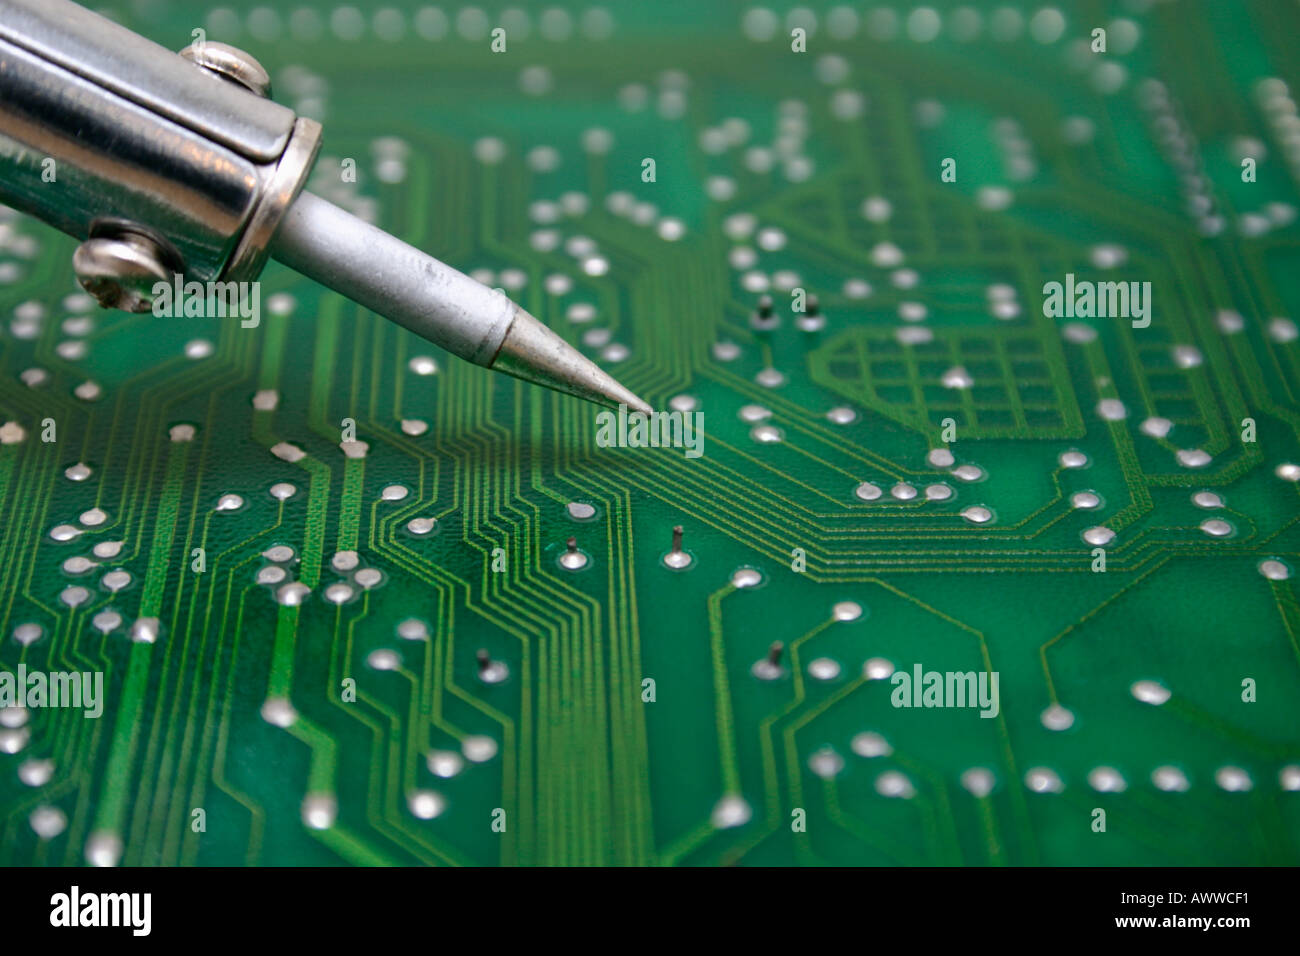 Repair Electronic Circuit Board With Soldering Iron